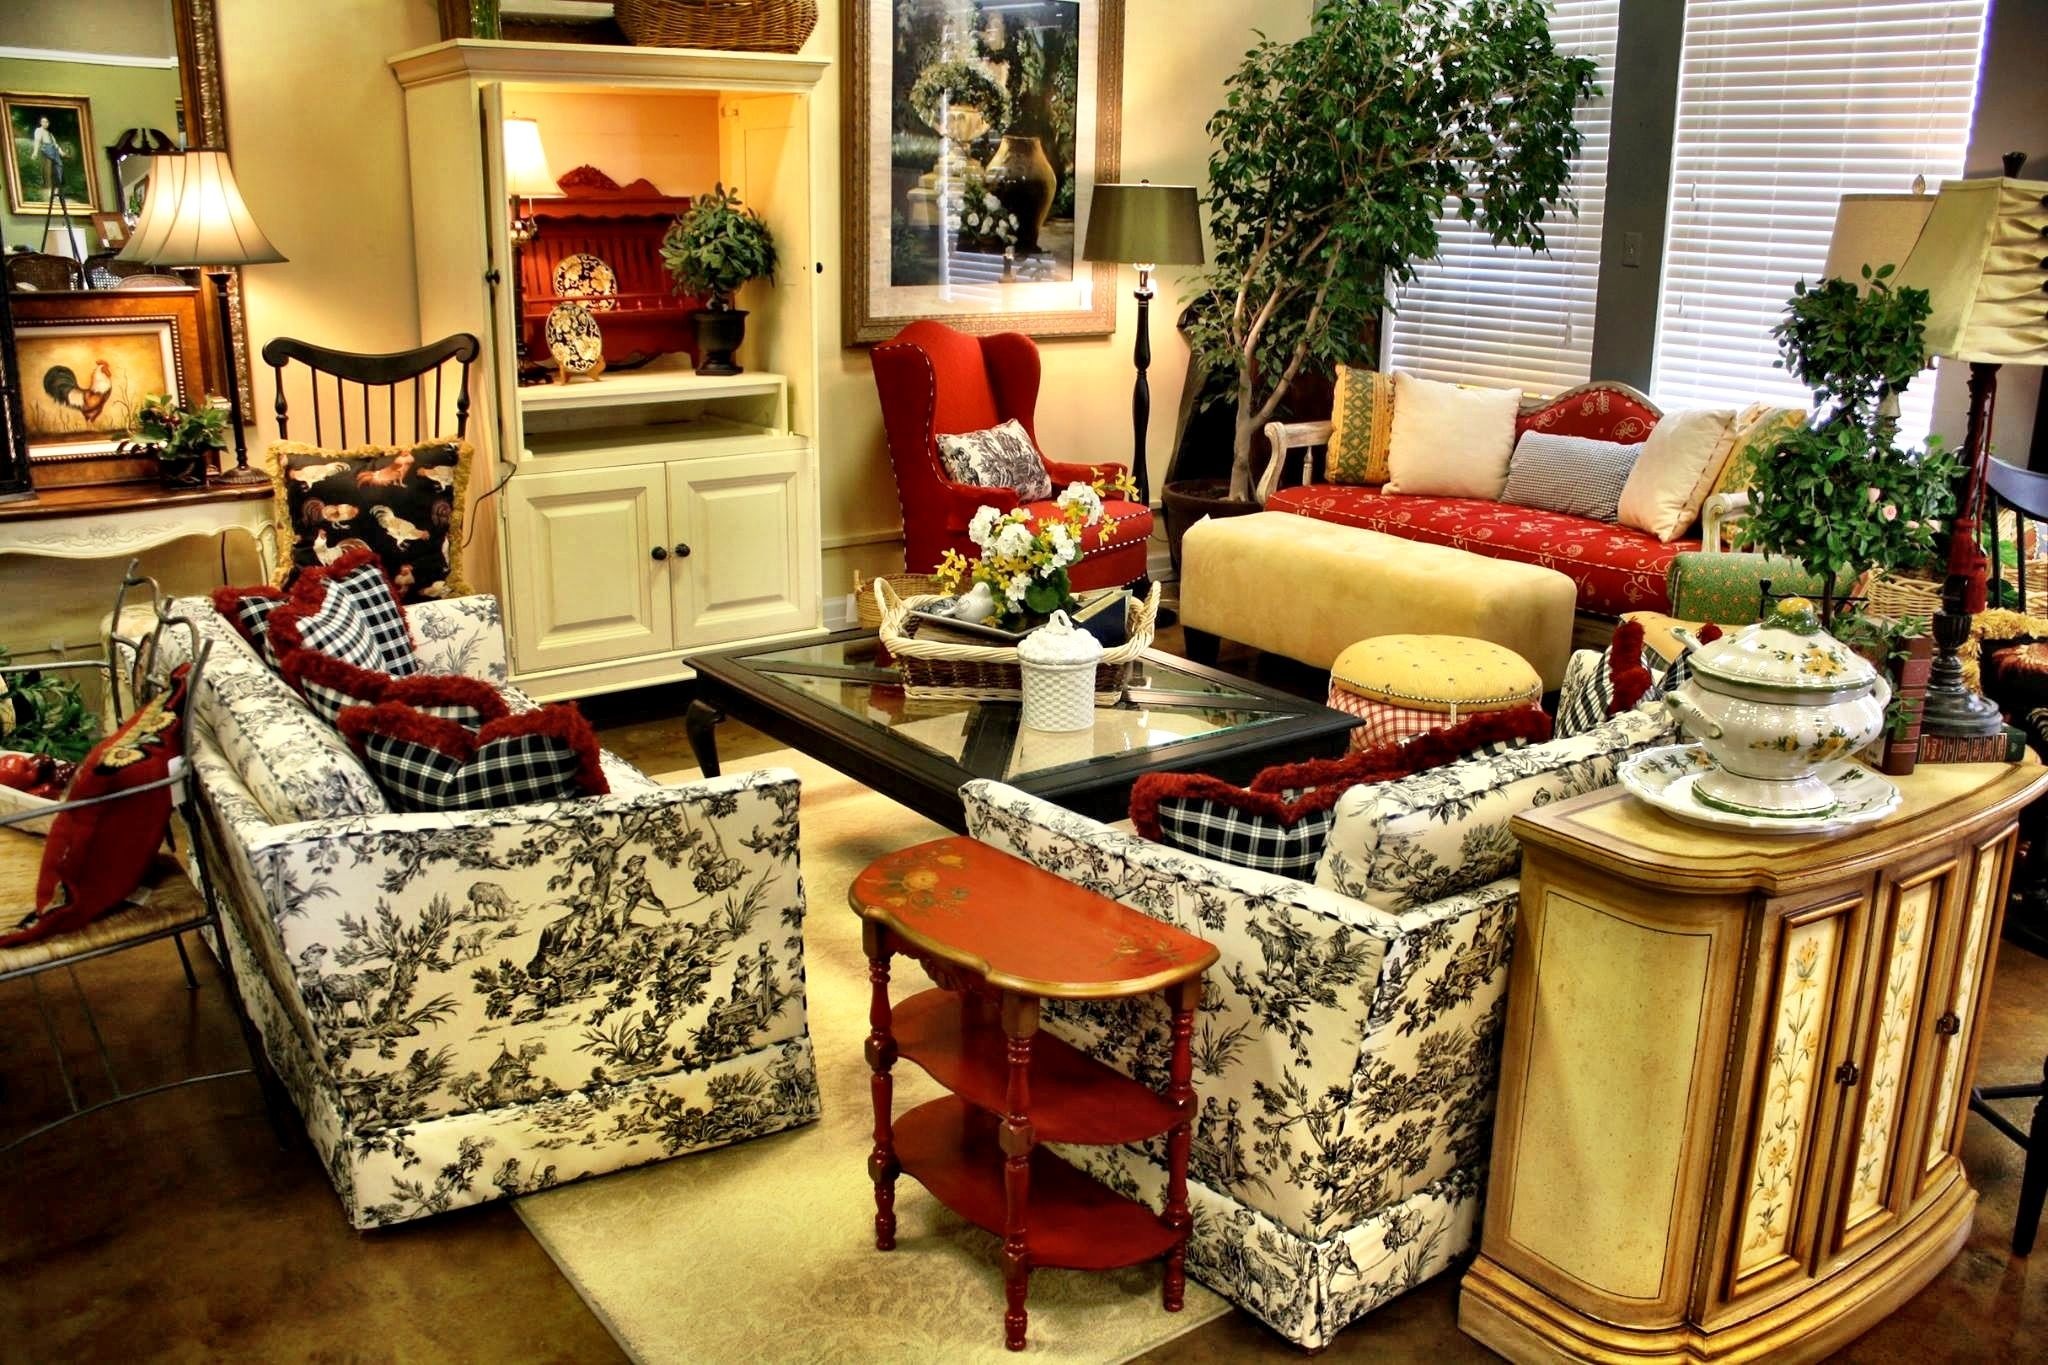 FRENCH COUNTRY PERFECTION At The Largest Upscale Resale Furniture Home Decor Store In St Louis